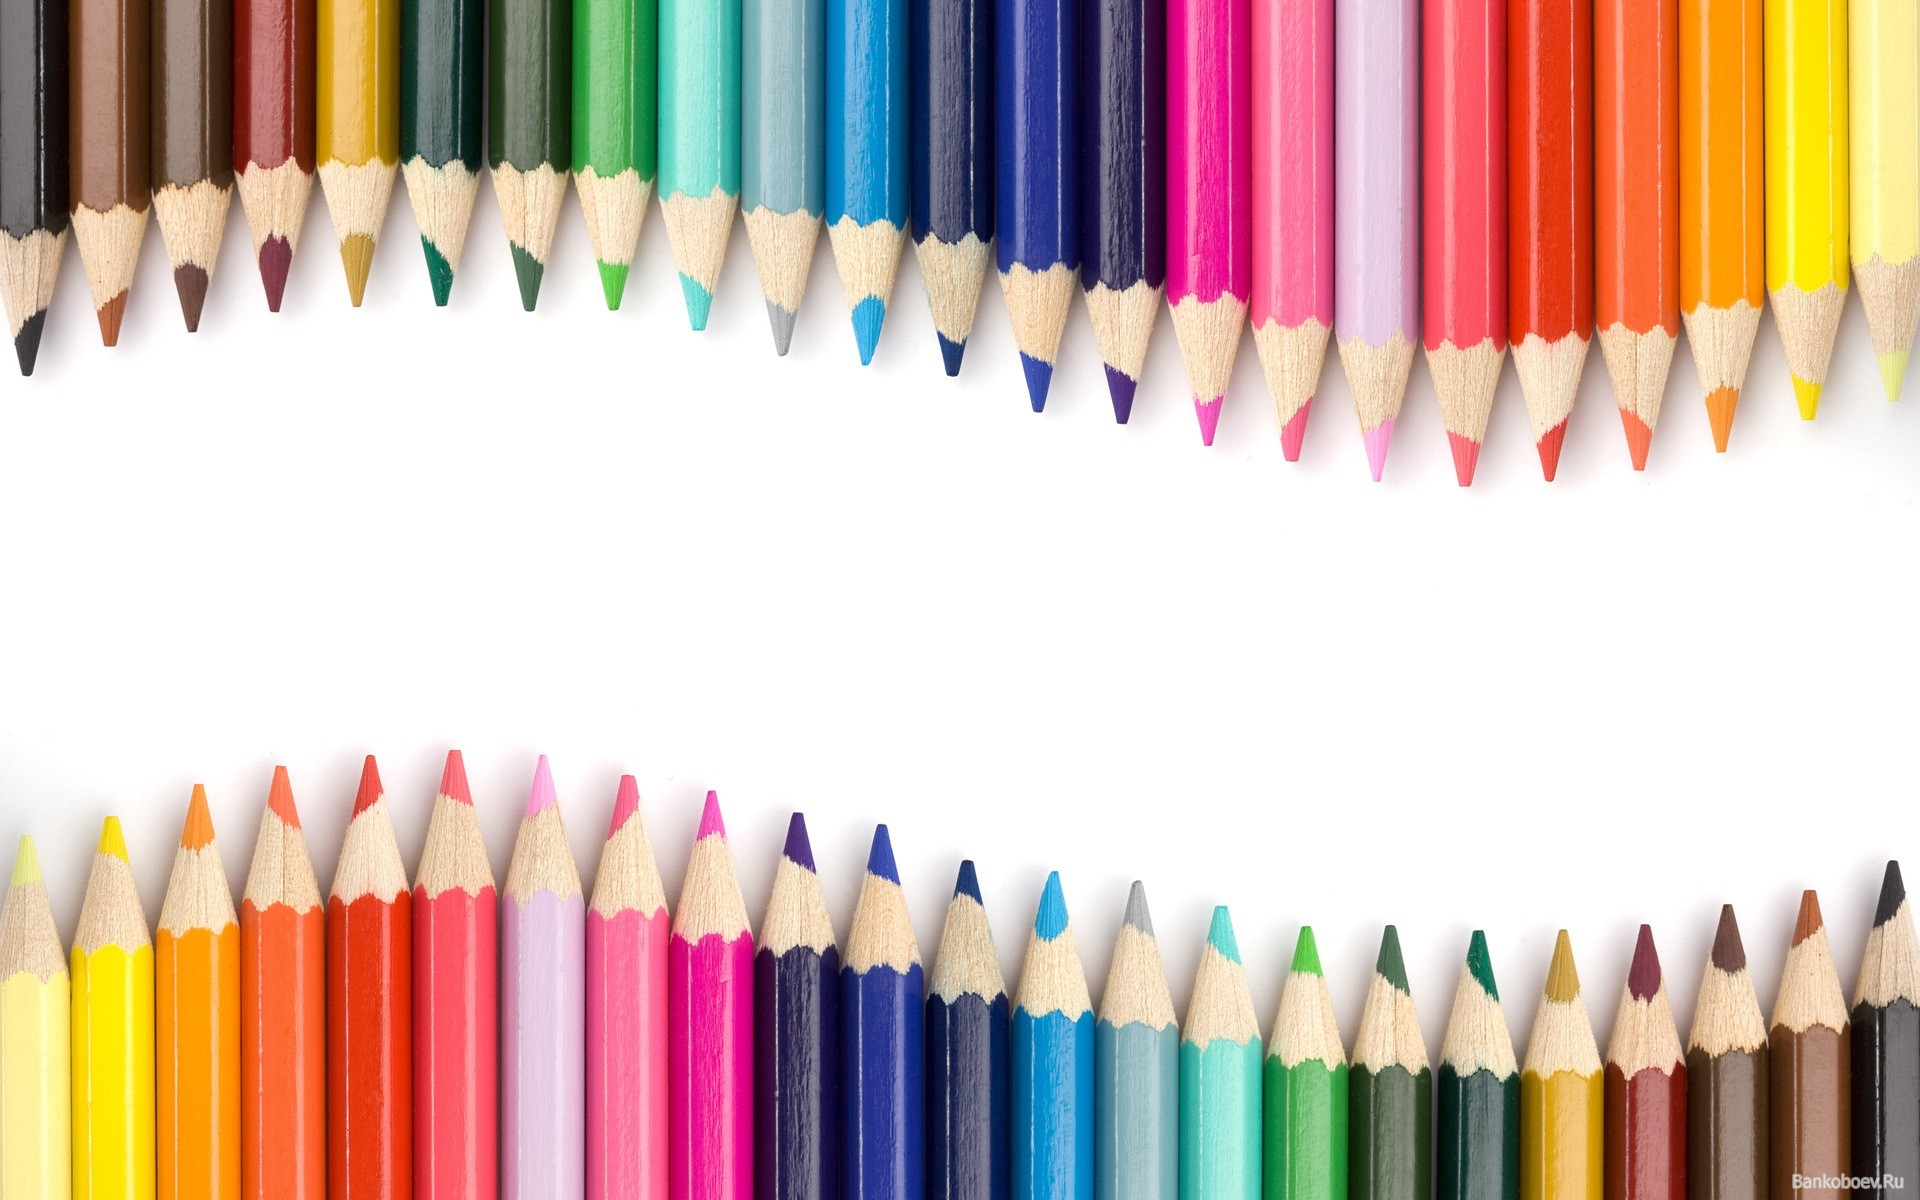 ... crayon-pencils-wallpapers crayons_pencils_desktop_1920x1200_wallpaper ...